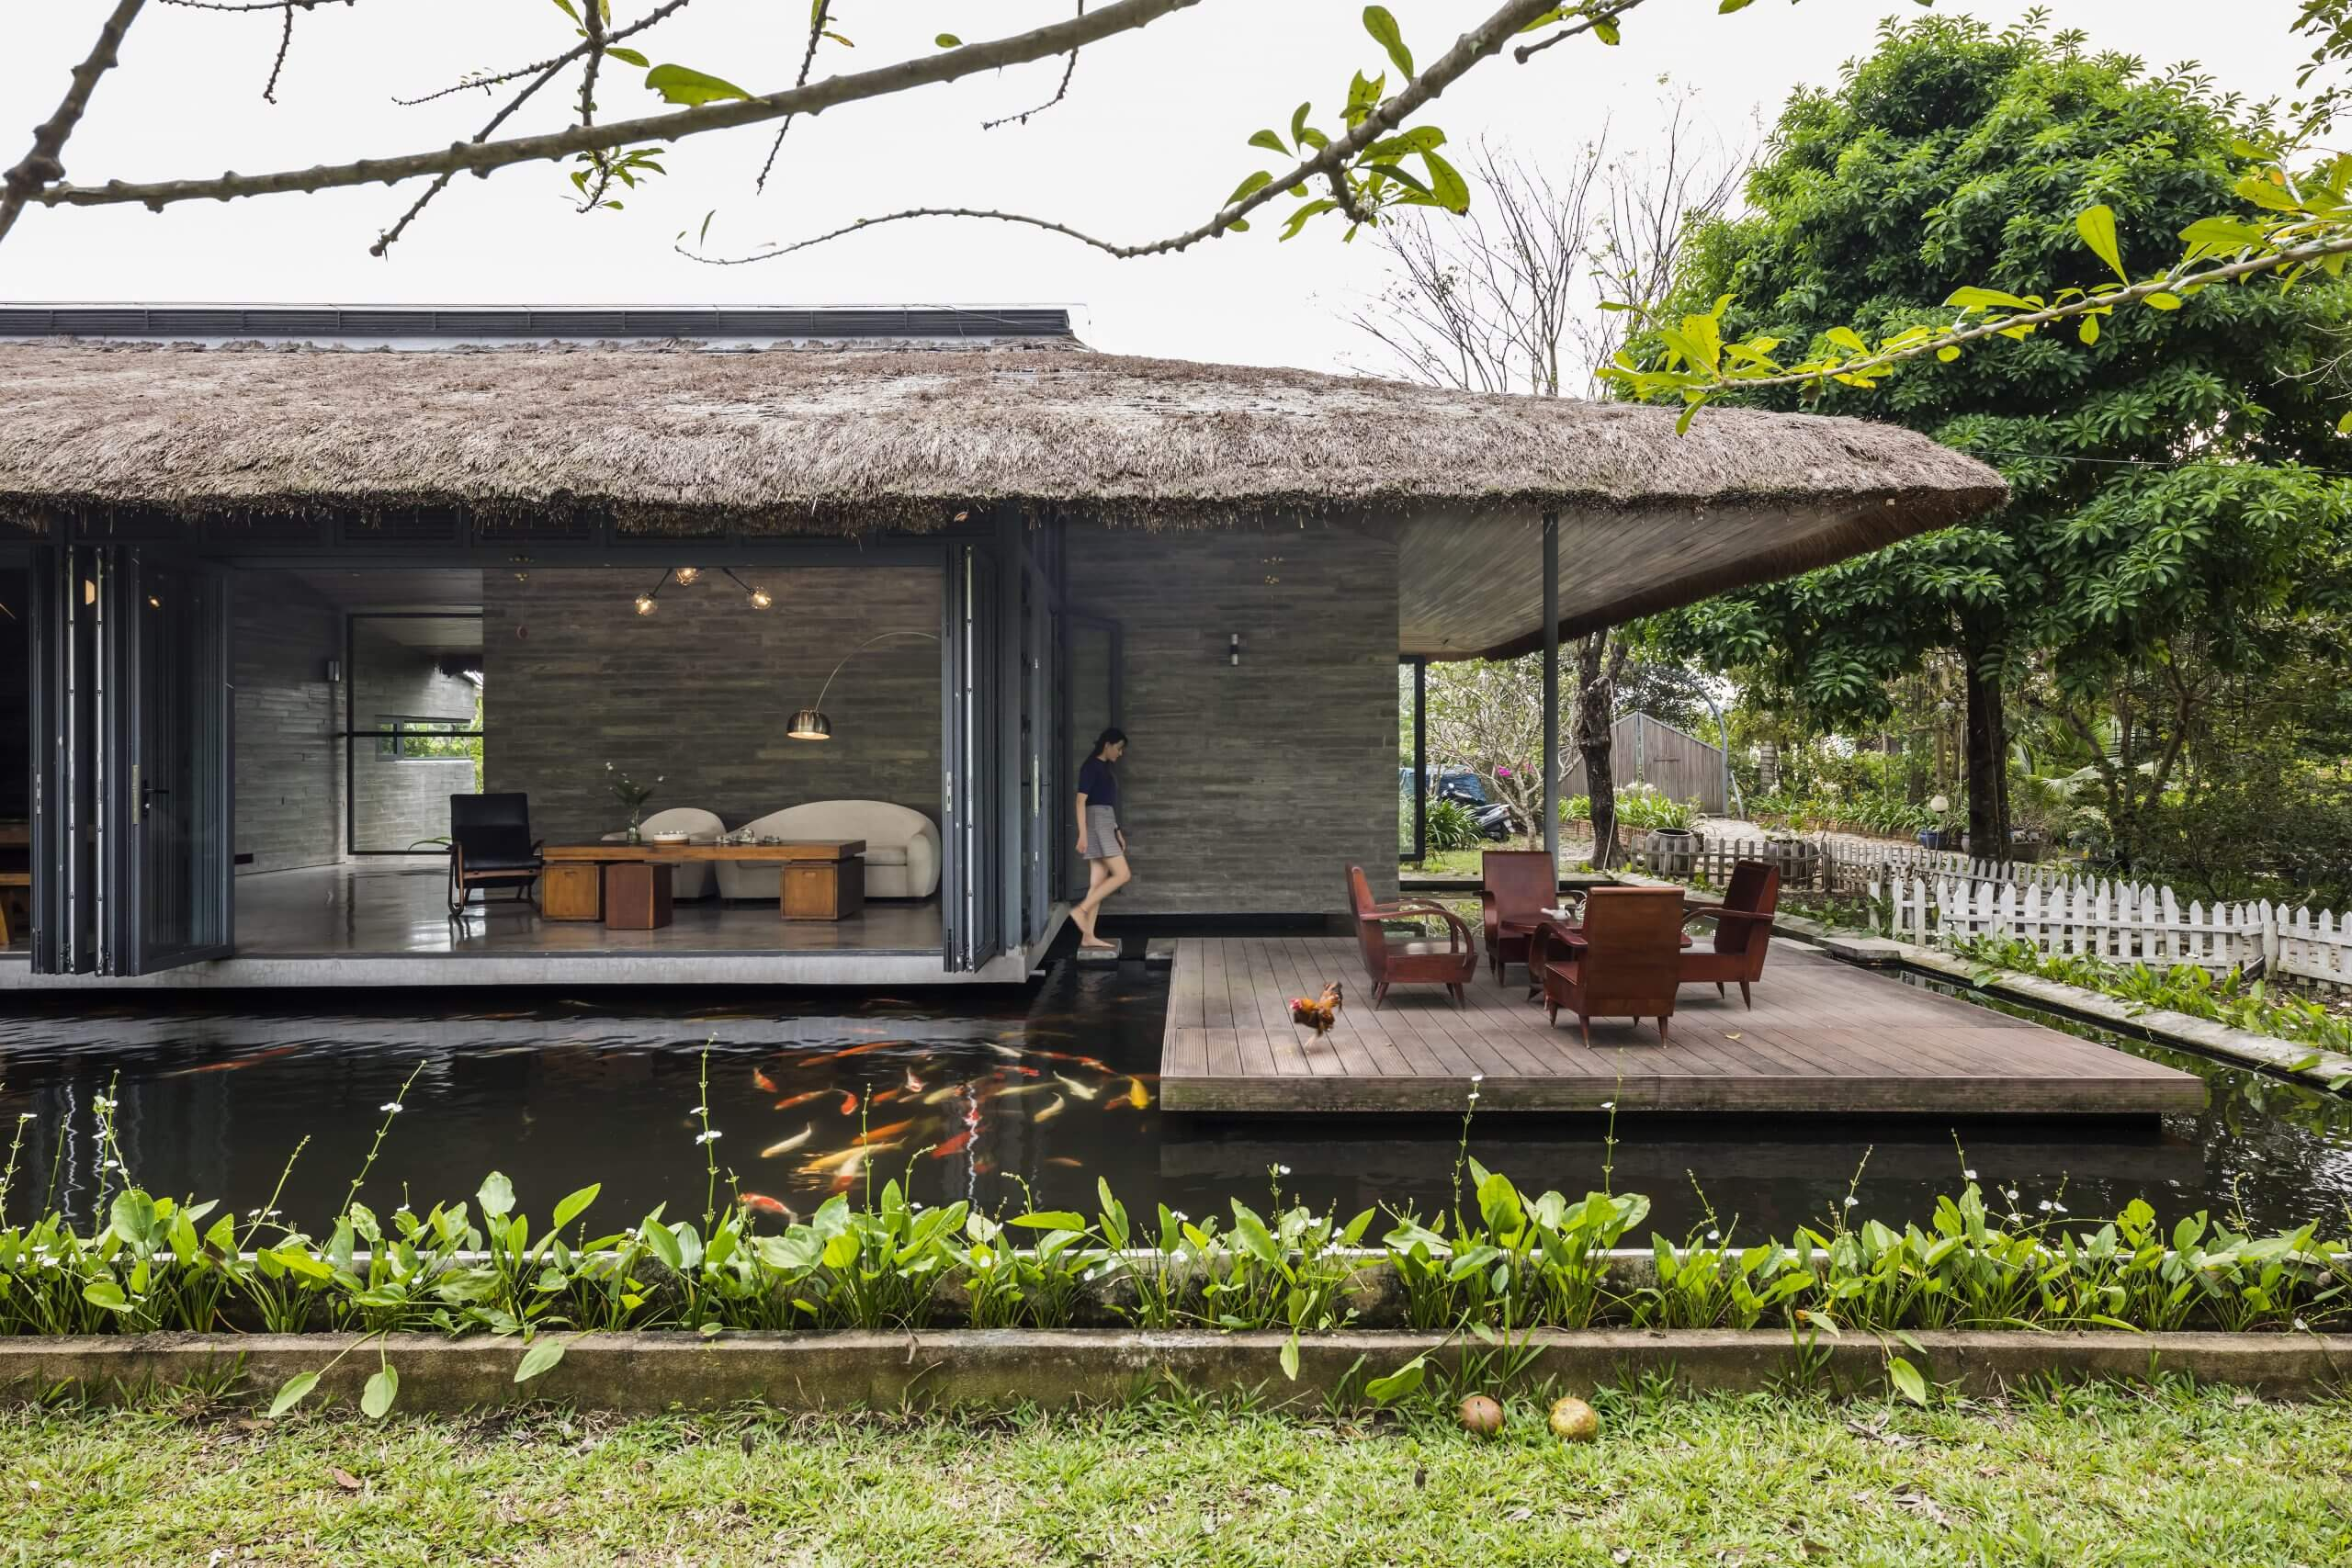 Am House | Garden House with Thatched Roof in Vietnam